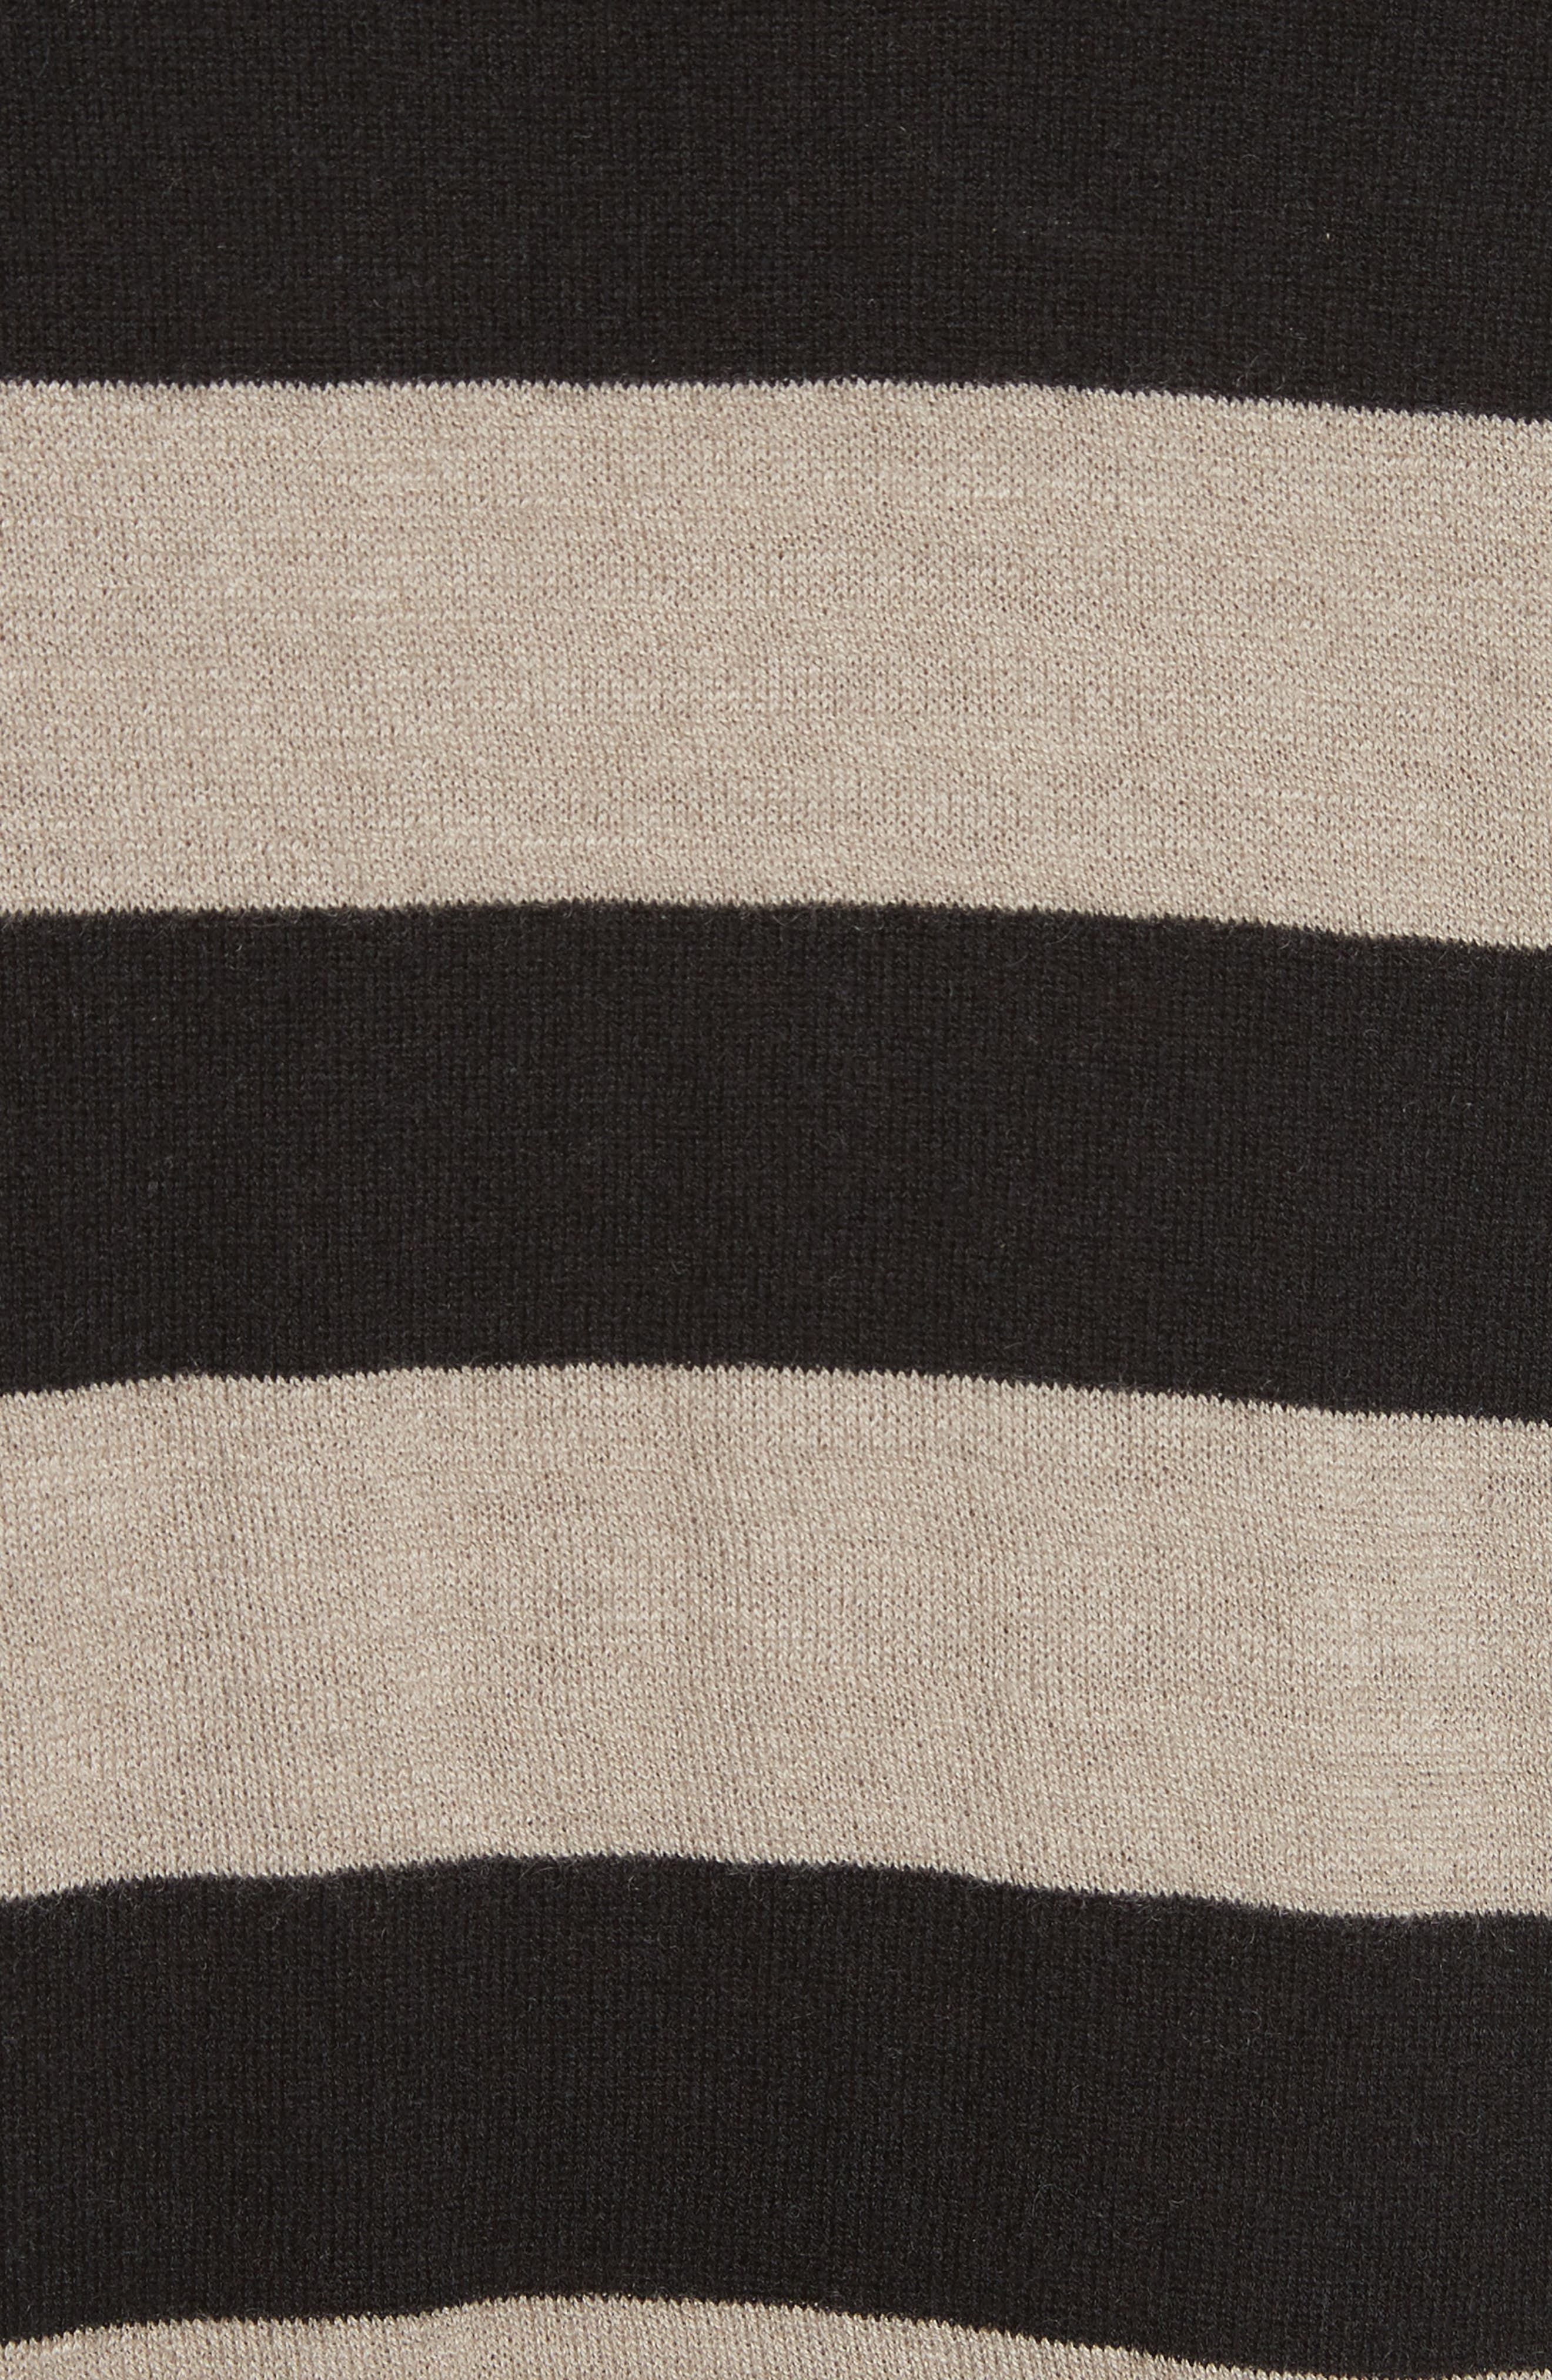 Wide Stripe Wool & Cashmere Sweater,                             Alternate thumbnail 5, color,                             260